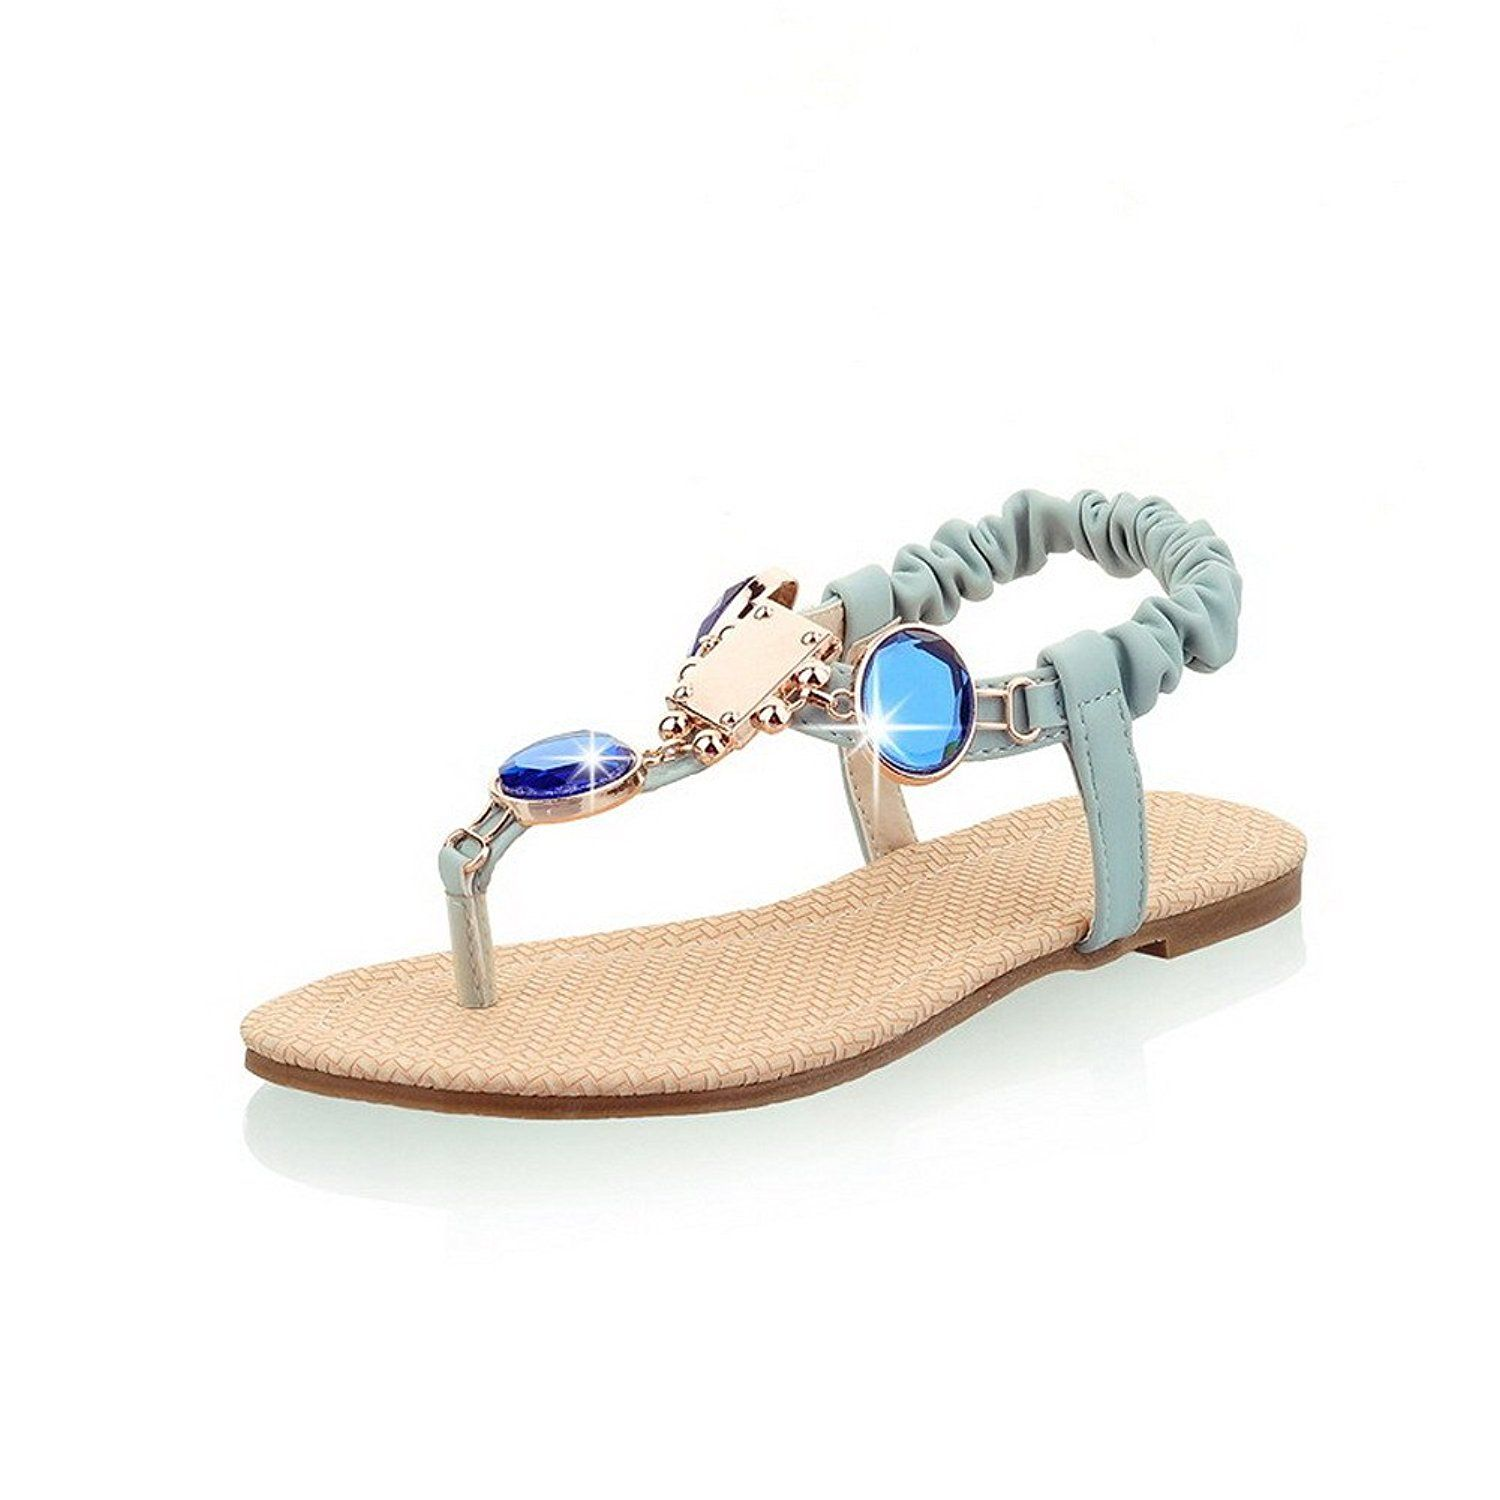 3eb591b269df VogueZone009 Women s No Heel Soft Material Solid Elastic Split Toe Flip-Flop -Sandals    You can find more details by visiting the image link.